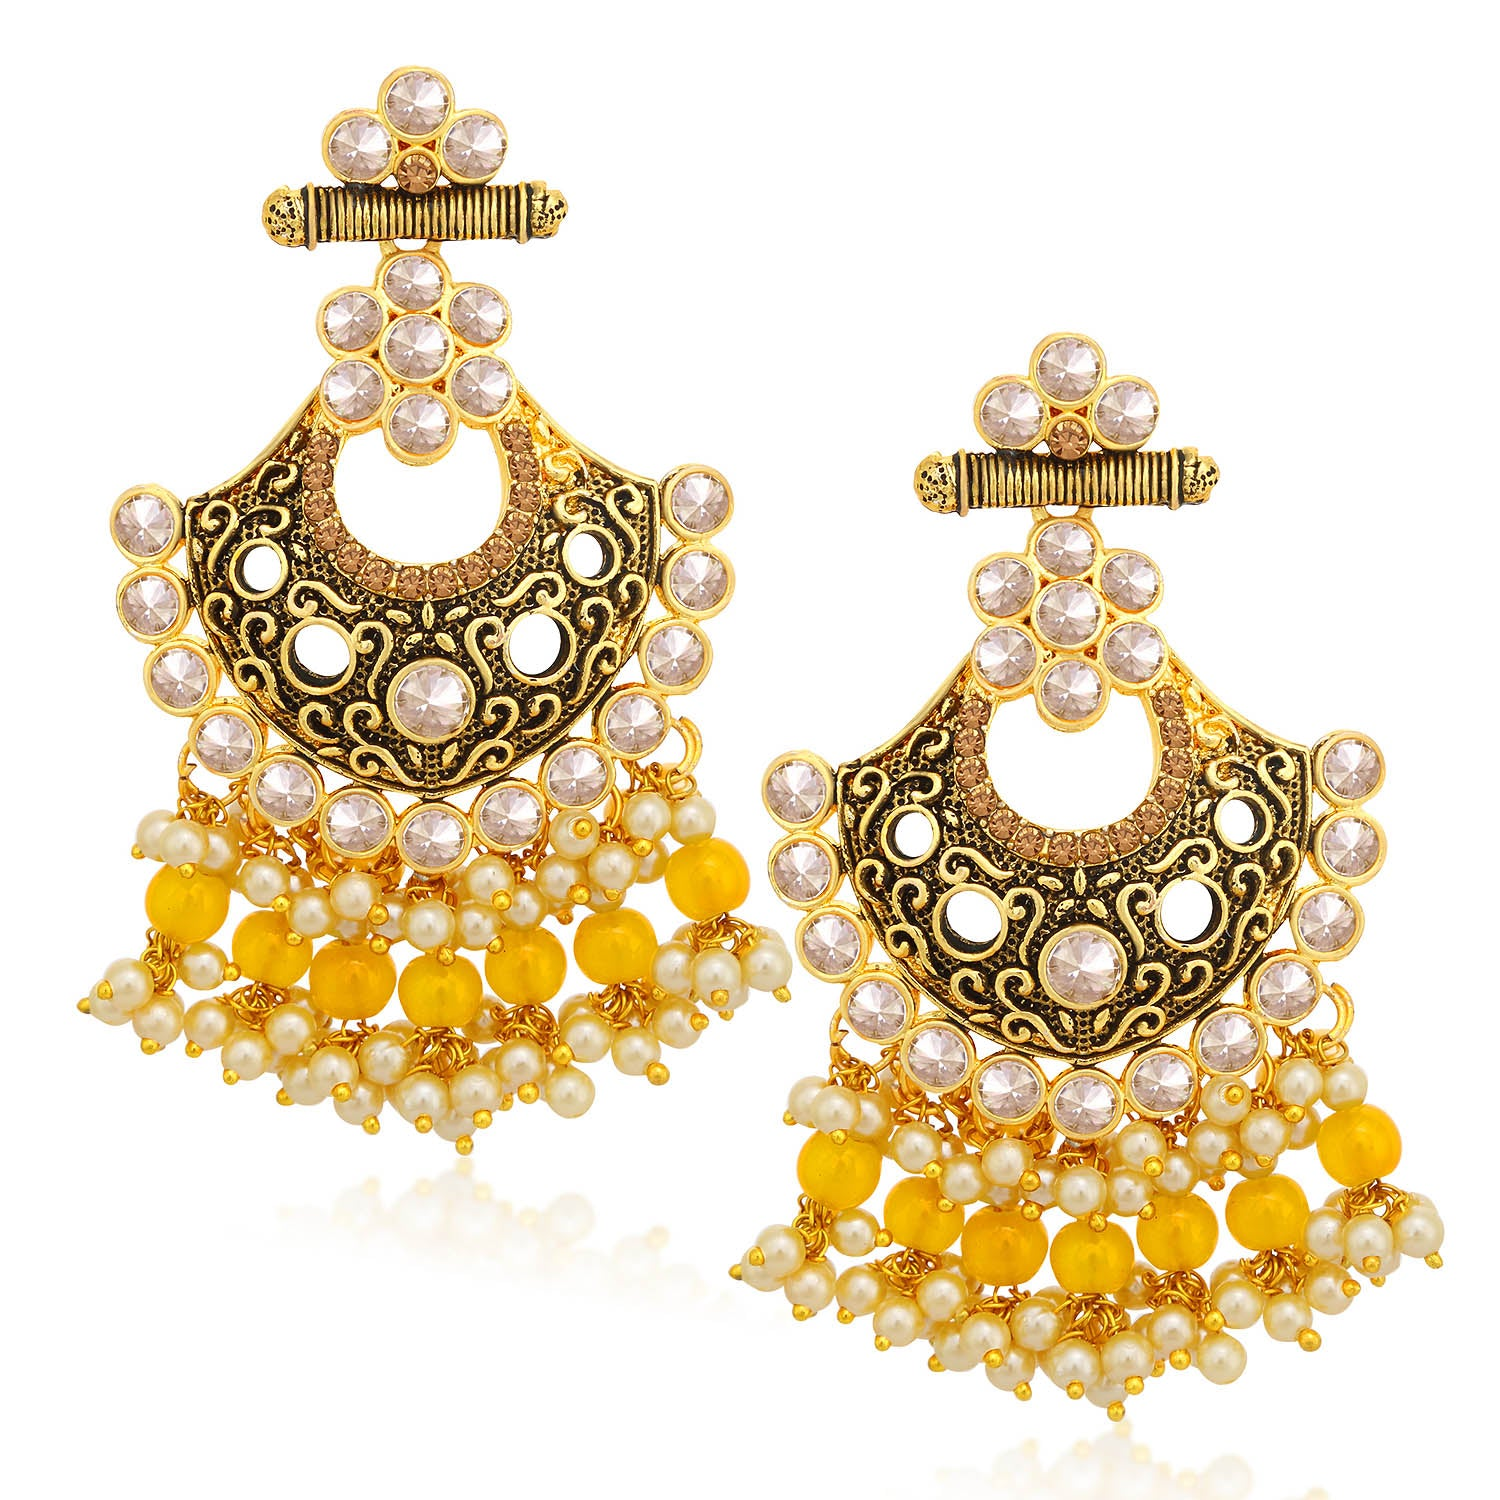 Sukkhi Glamorous LCT Stone Gold Plated Pearl Chandelier Earring For Women-SUKKHI1-Earring